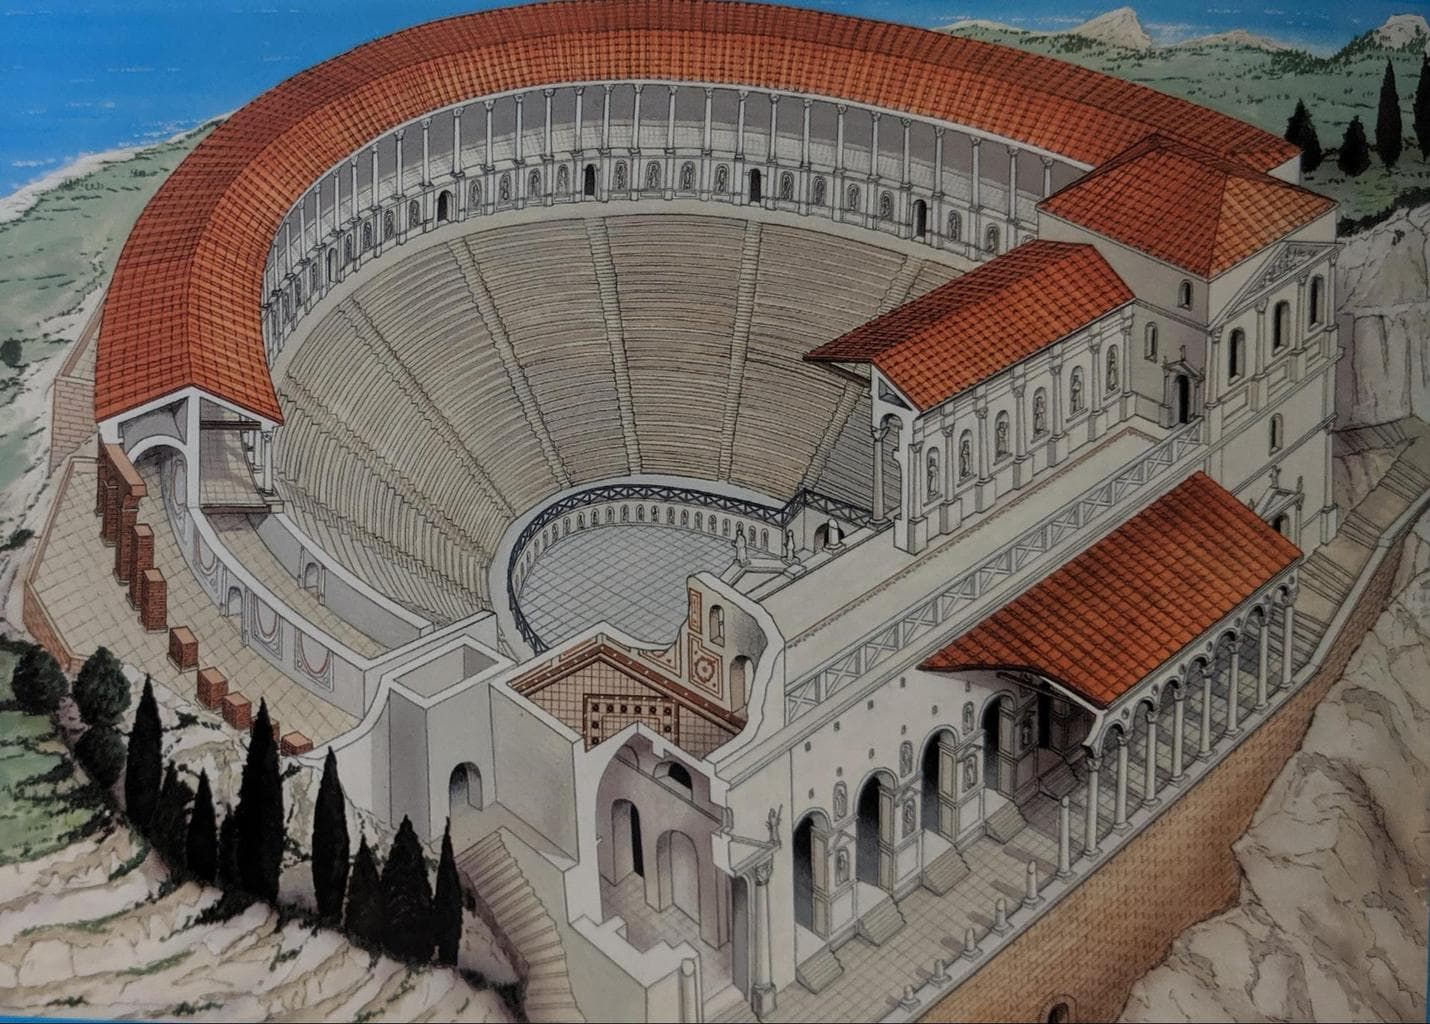 Reconstruction of the Ancient Greek Theatre of Taormina